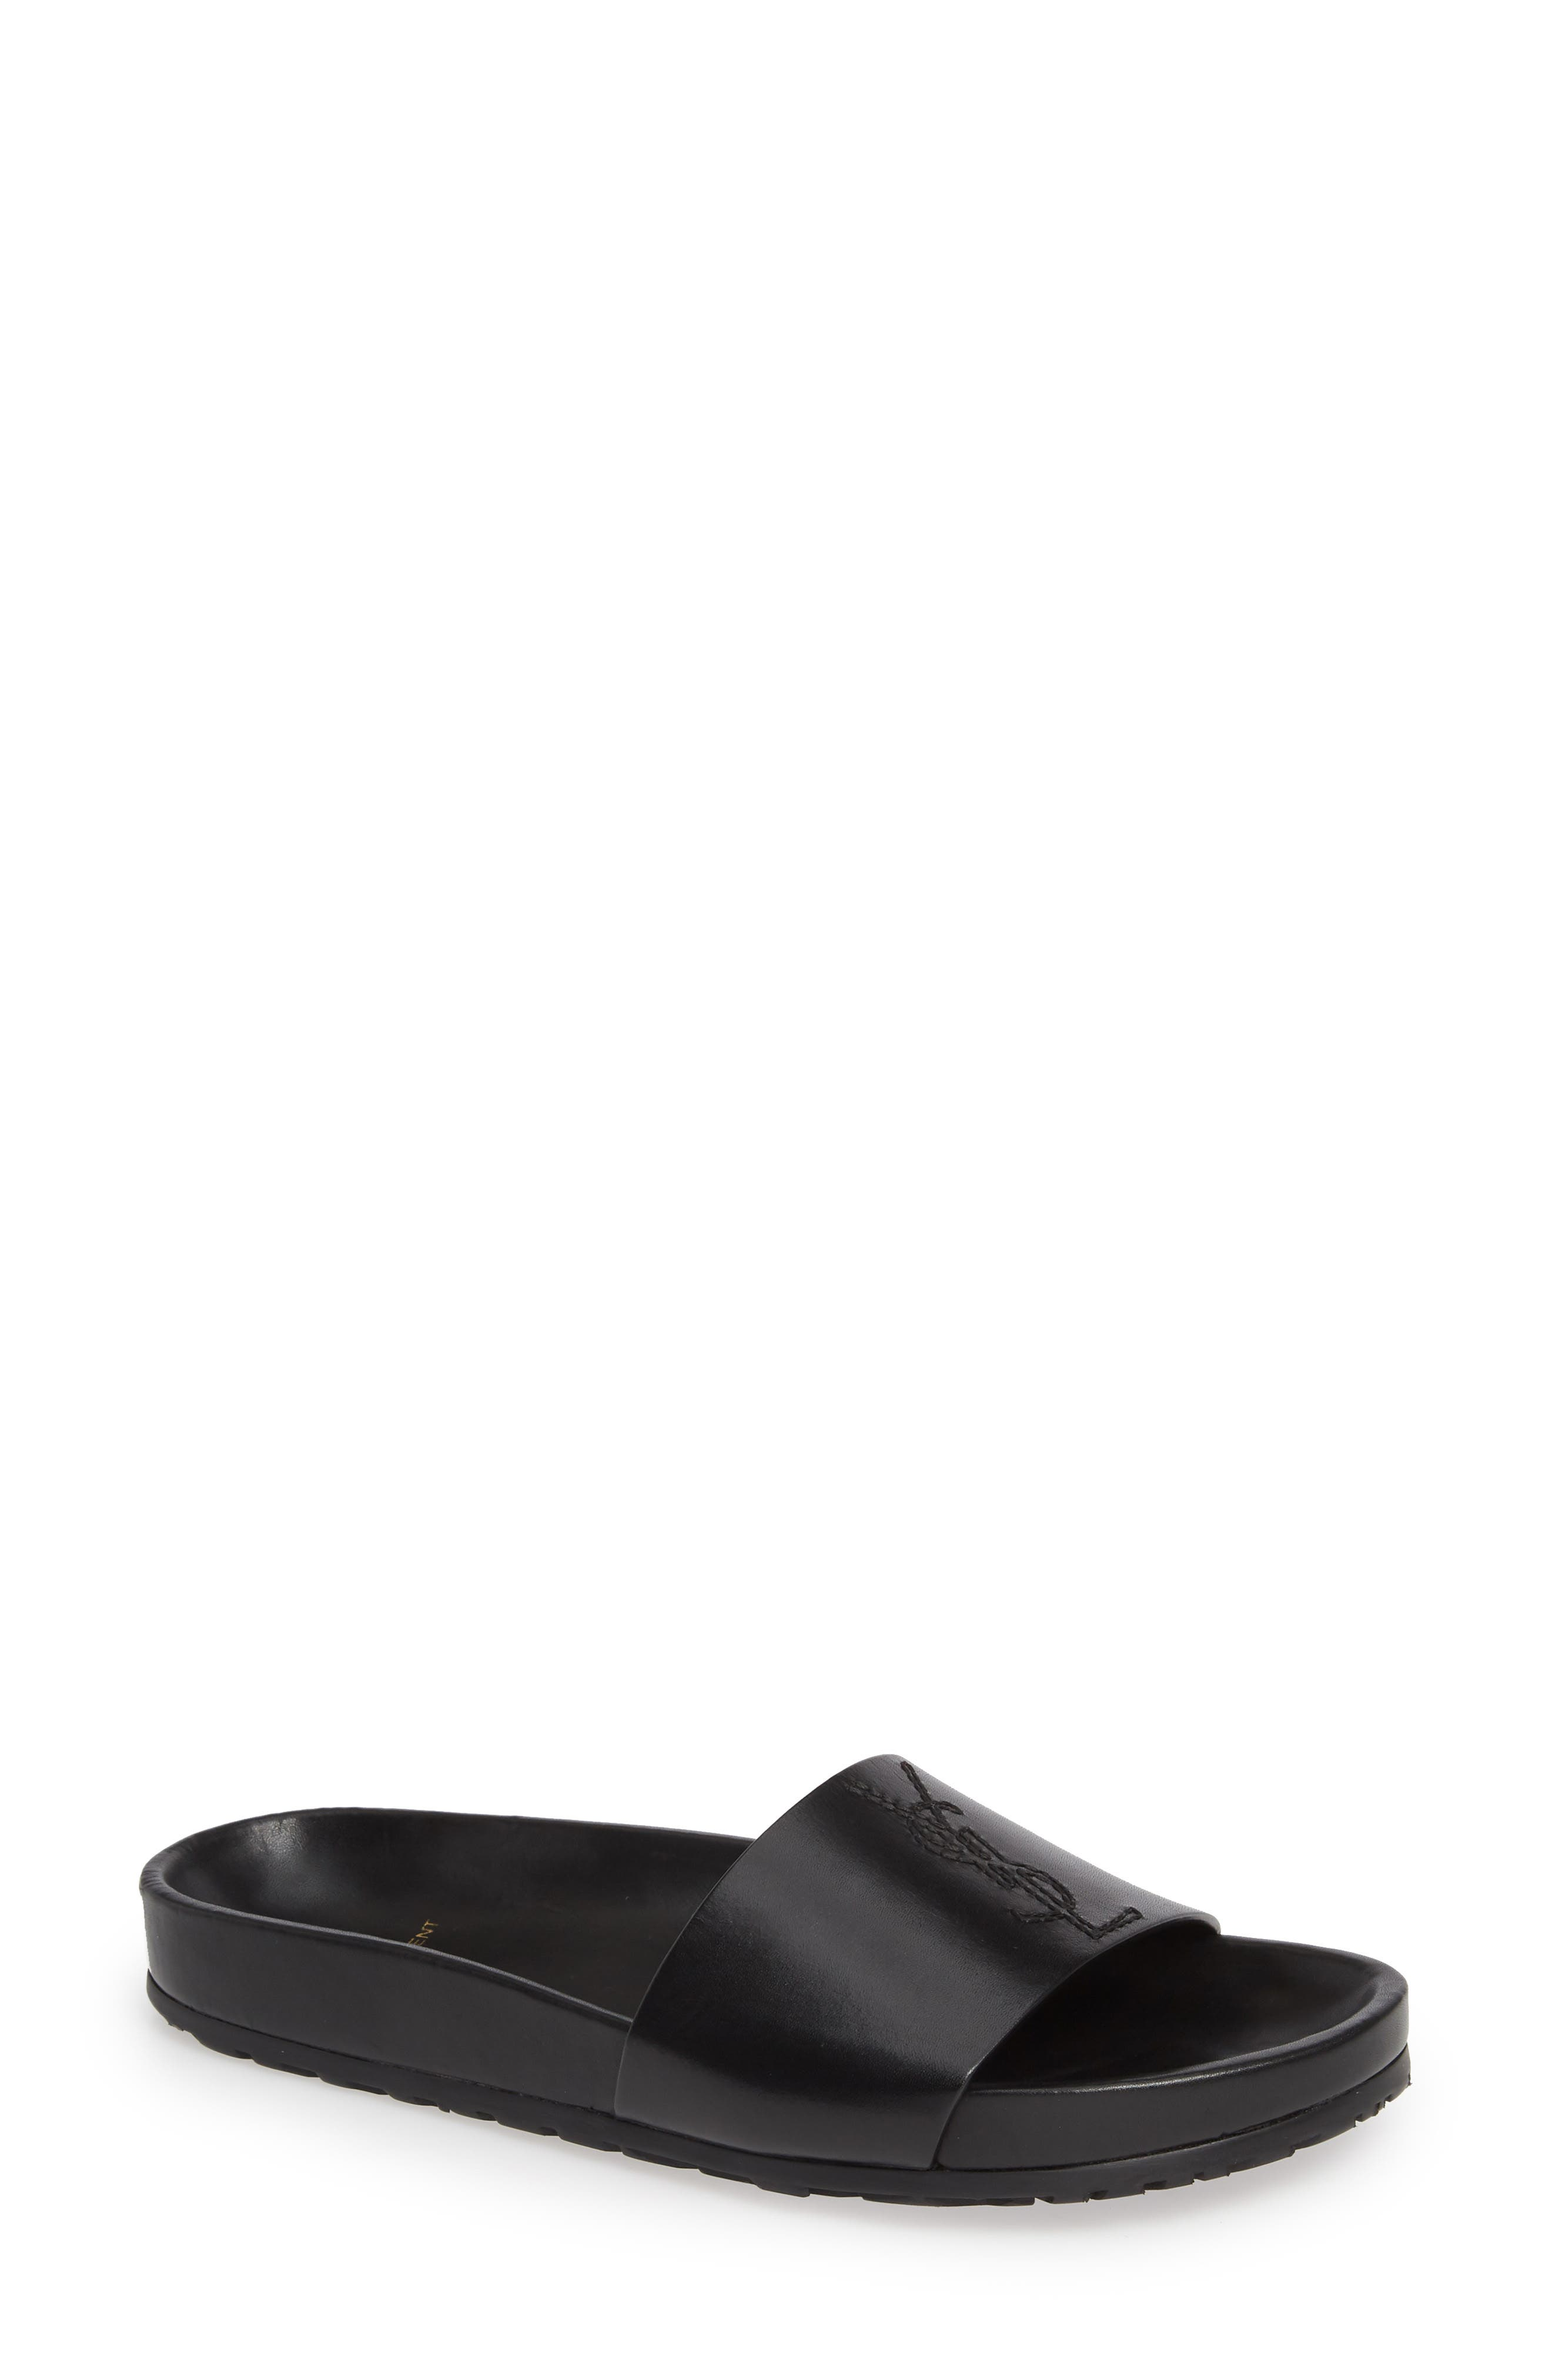 SAINT LAURENT, Jimmy Logo Slide Sandal, Main thumbnail 1, color, BLACK LEATHER